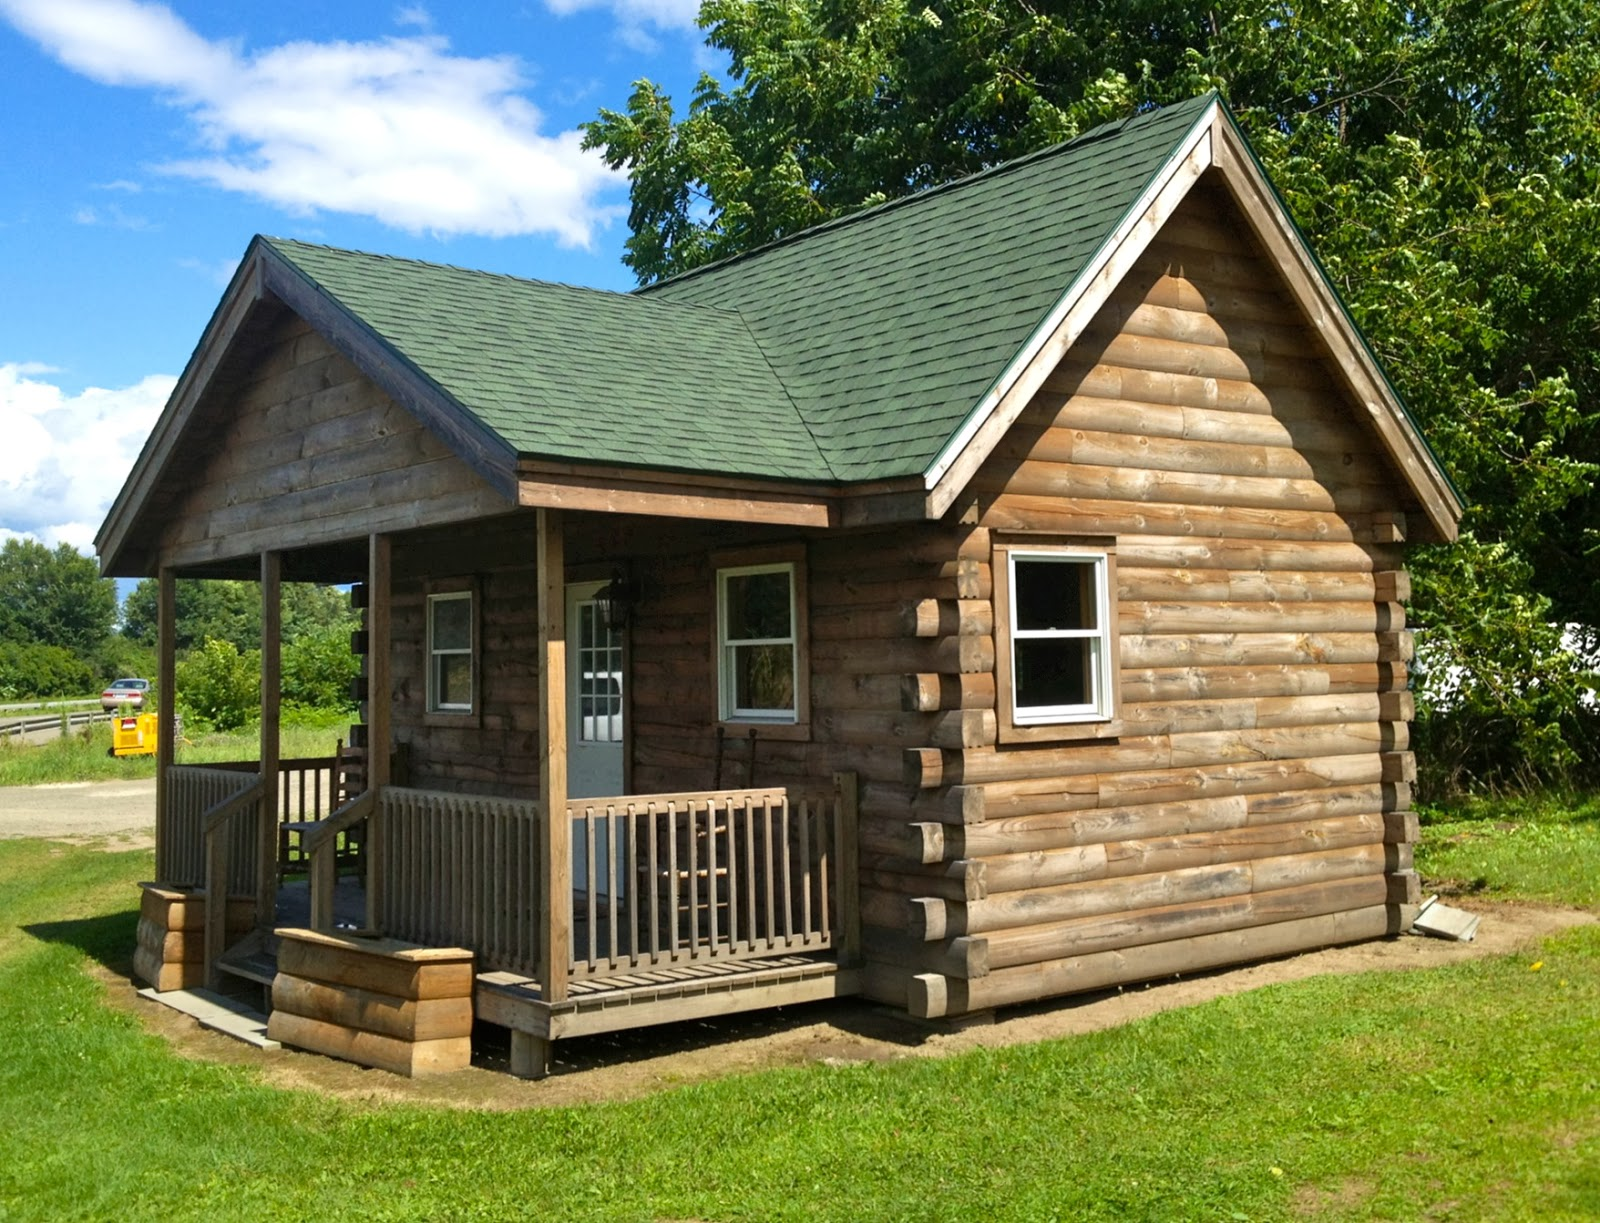 Small scale homes tiny home near binghamton ny - Small house plans ...